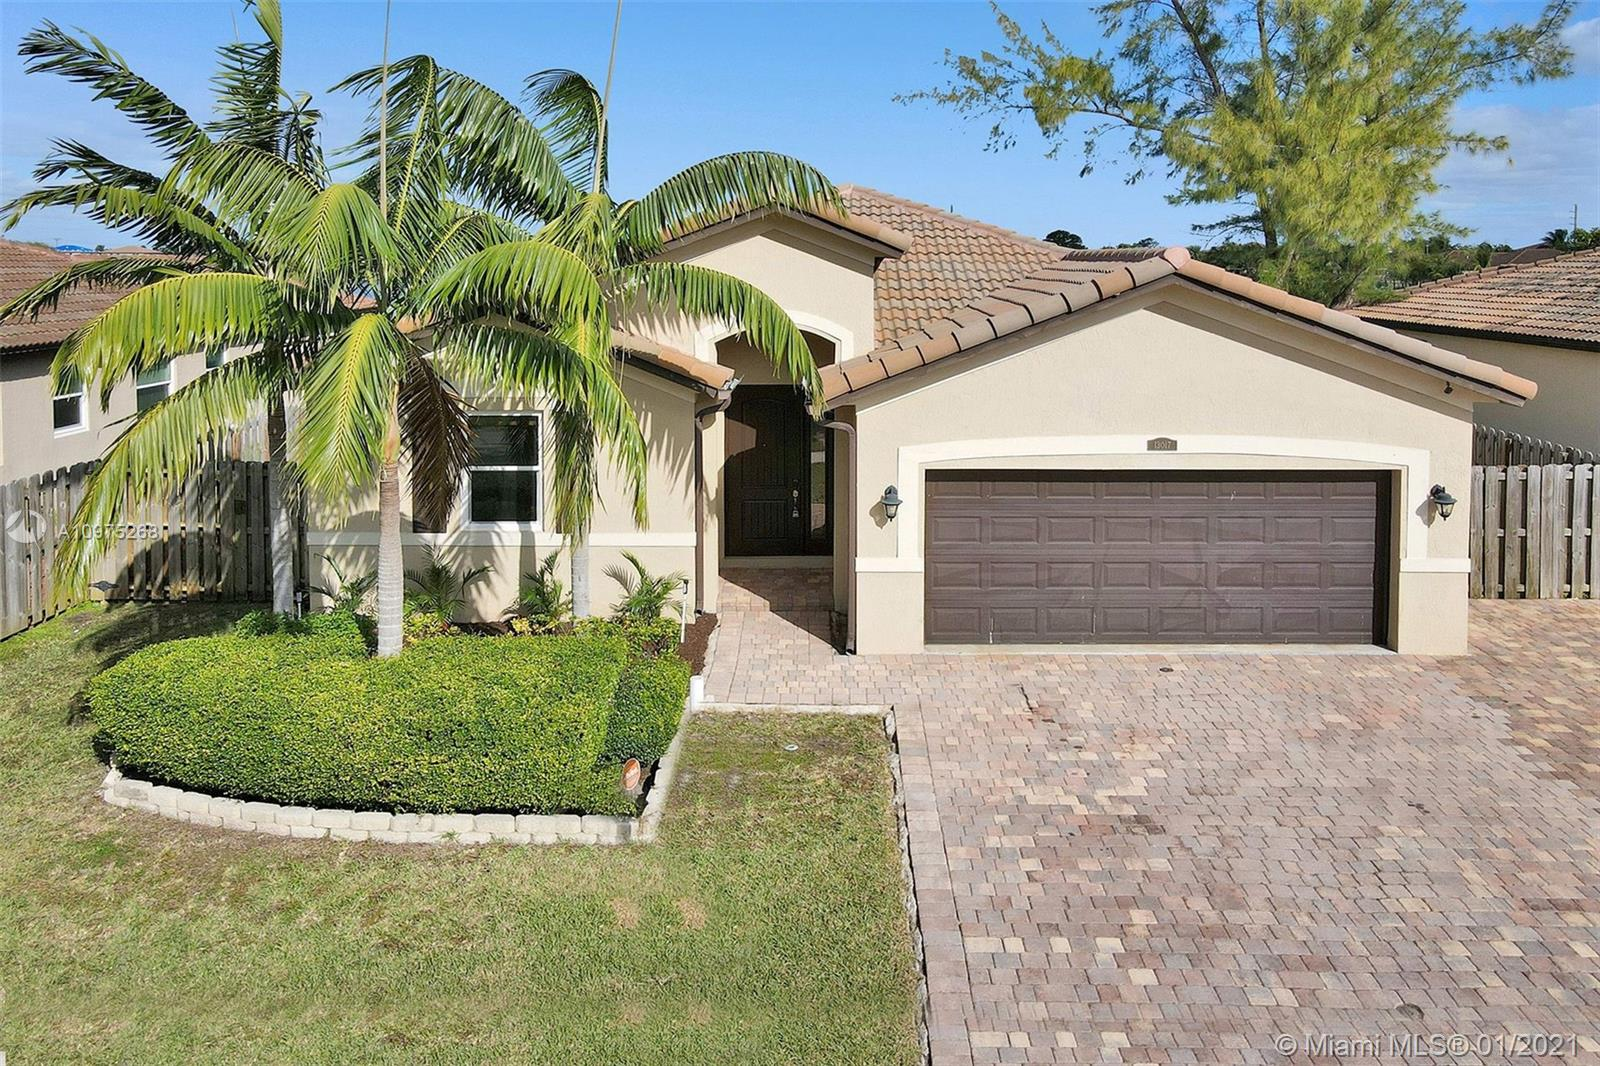 13017 SW 284th St Property Photo - Homestead, FL real estate listing